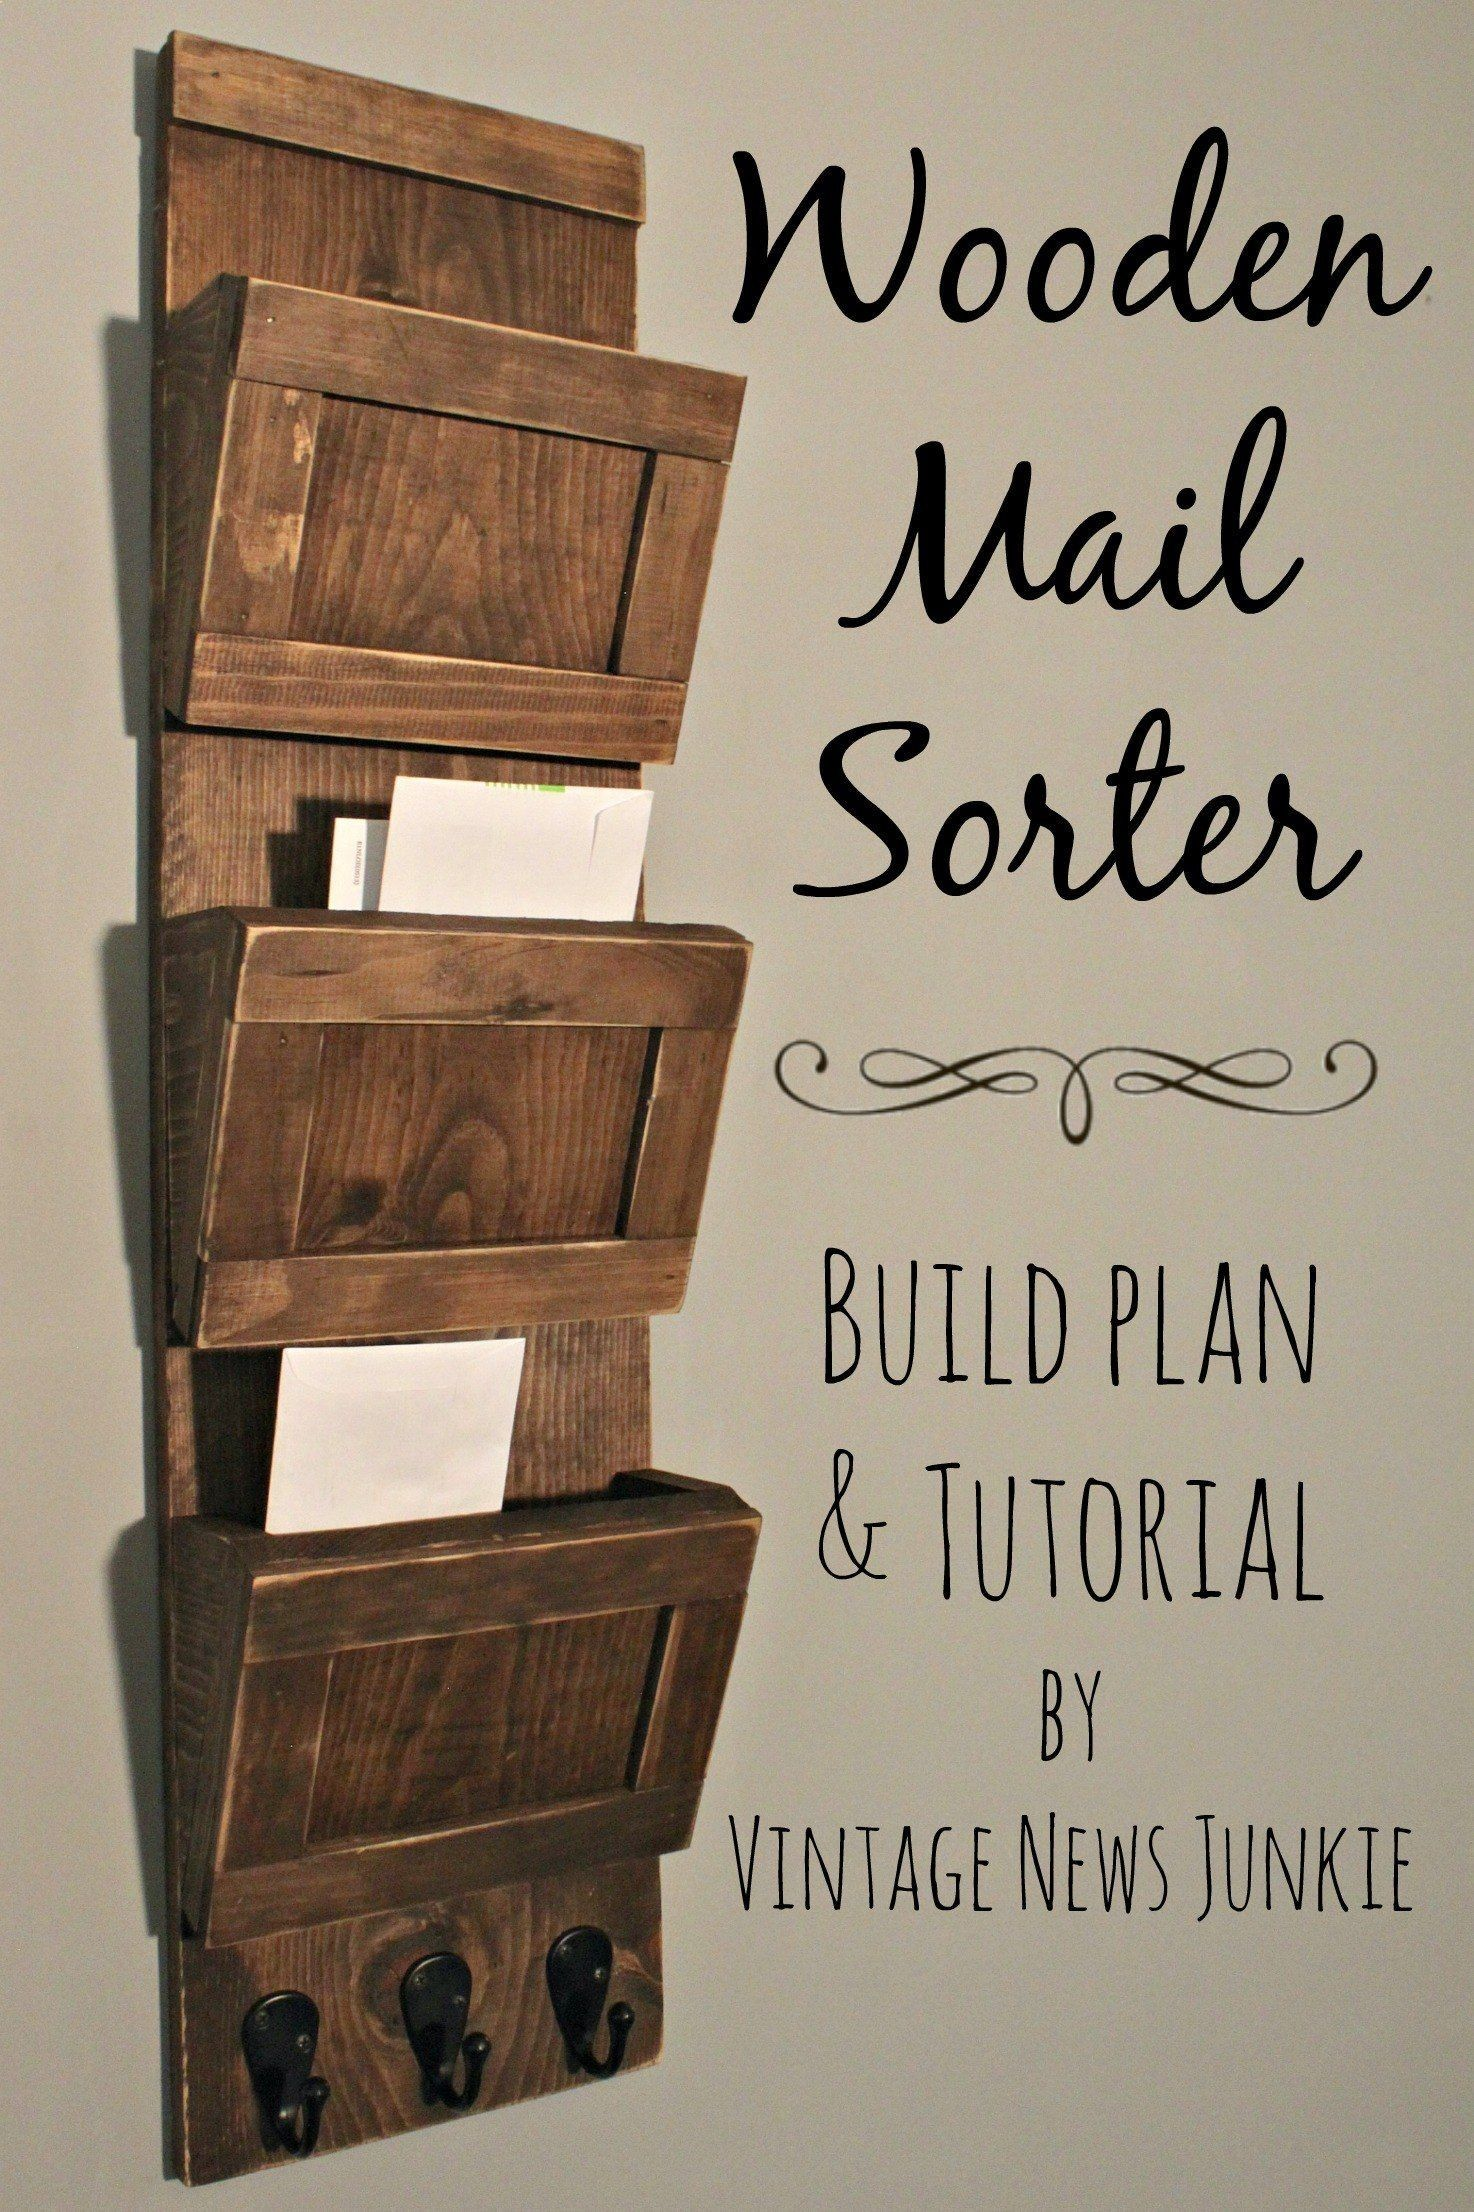 Plans Of Woodworking Diy Projects  Wooden Mail Sorter -